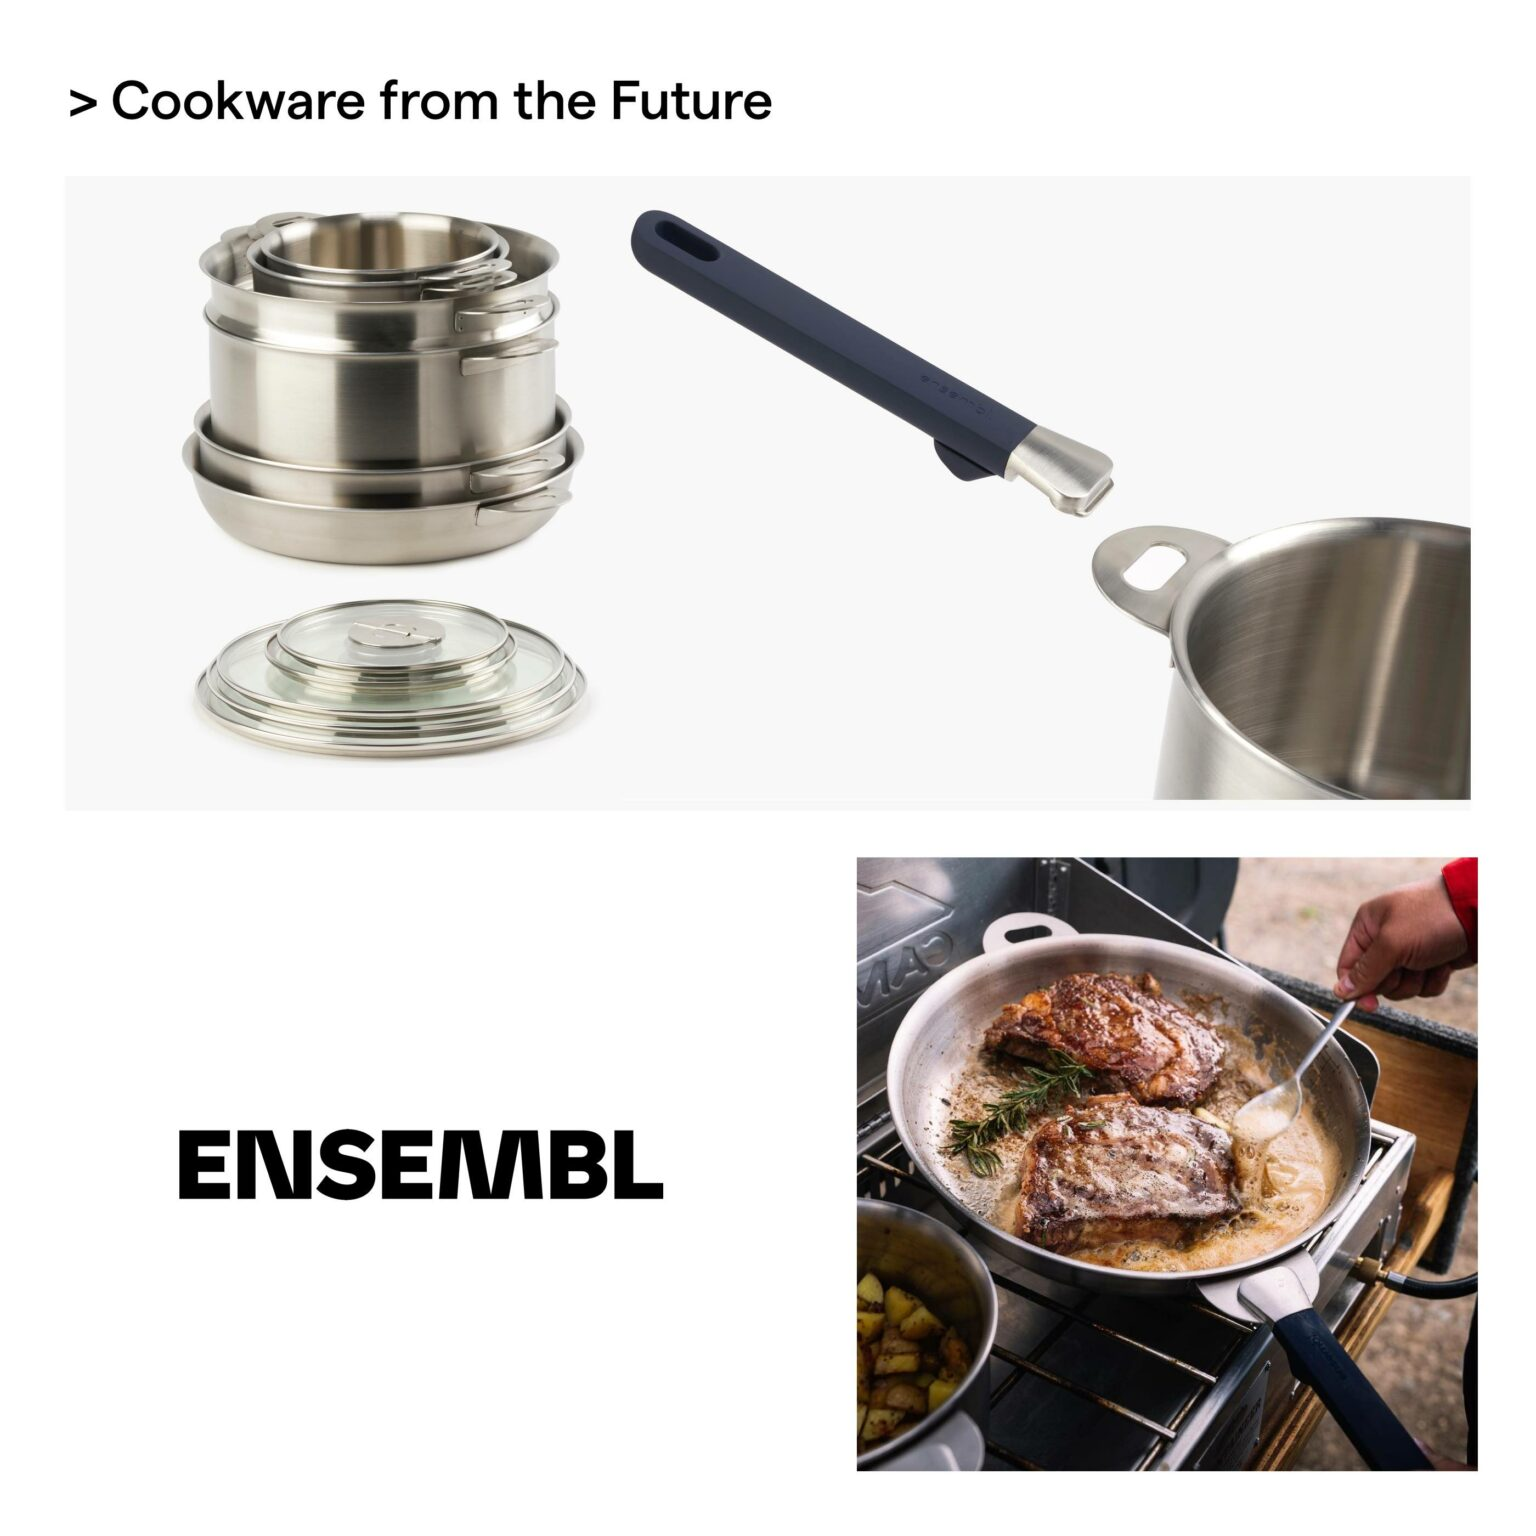 Ensembl stackware father's day advanced essentials gift guide